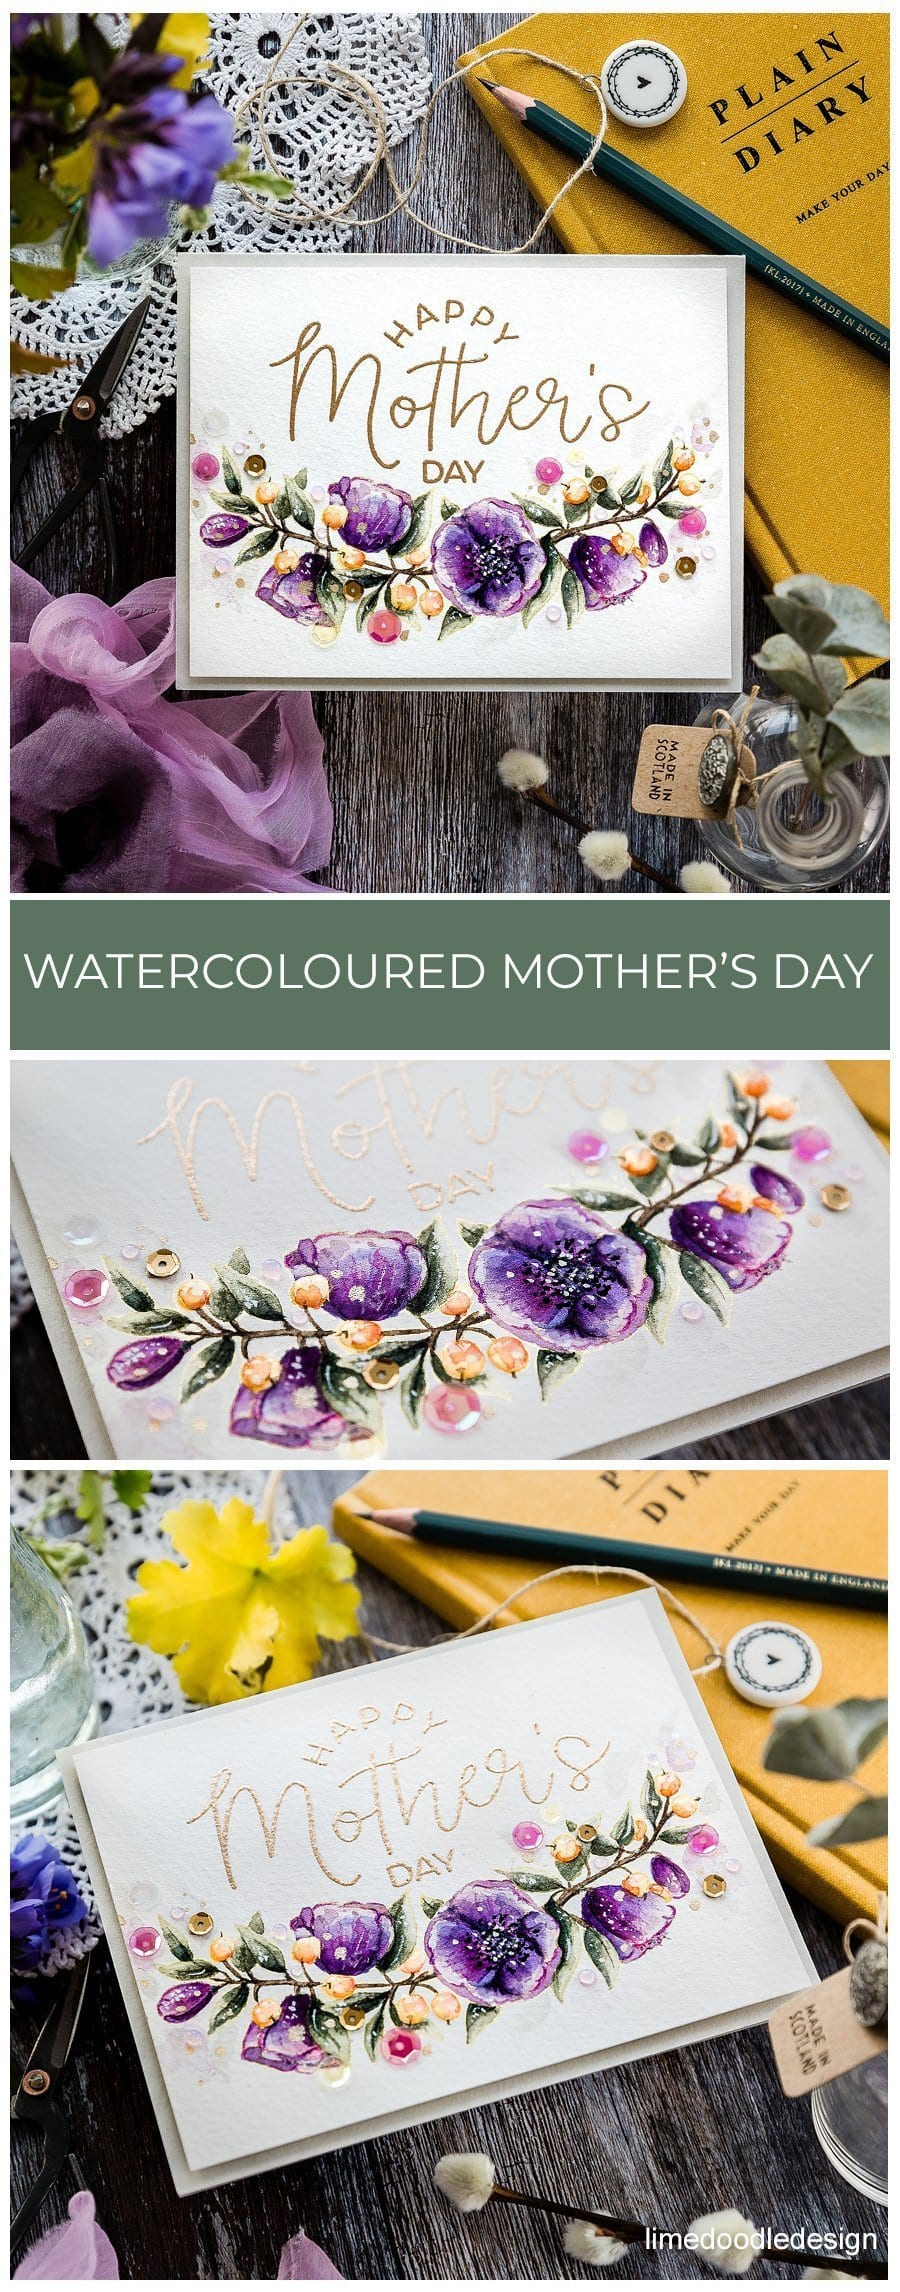 Handmade, watercoloured Mother's Day card by Debby Hughes using products from Honey Bee Studios. Find out more here: https://limedoodledesign.com/2019/04/watercoloured-mothers-day-card/